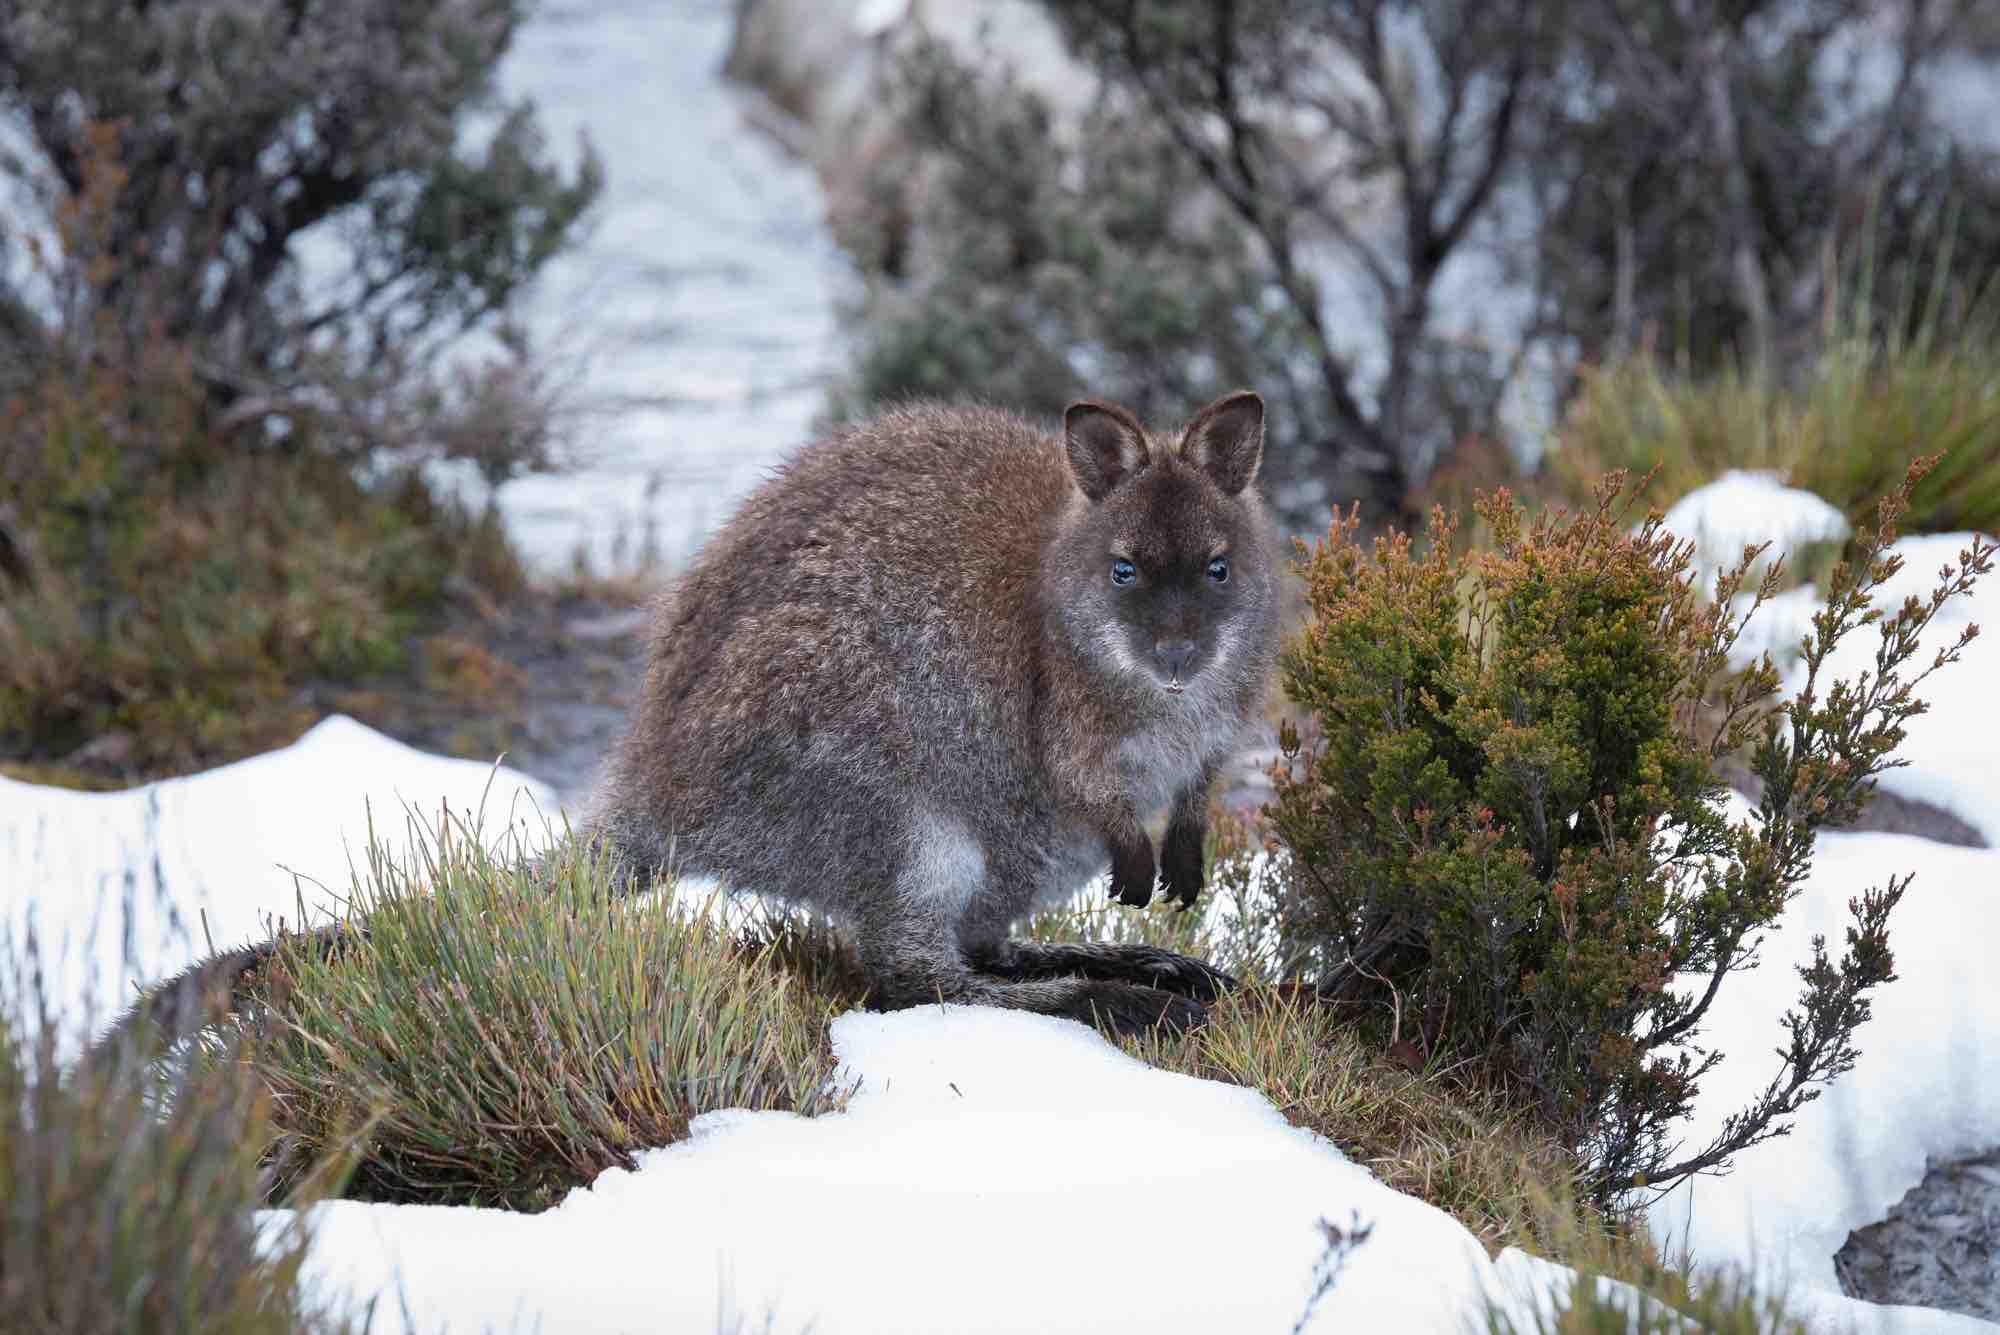 A wallaby in the snow in Australia